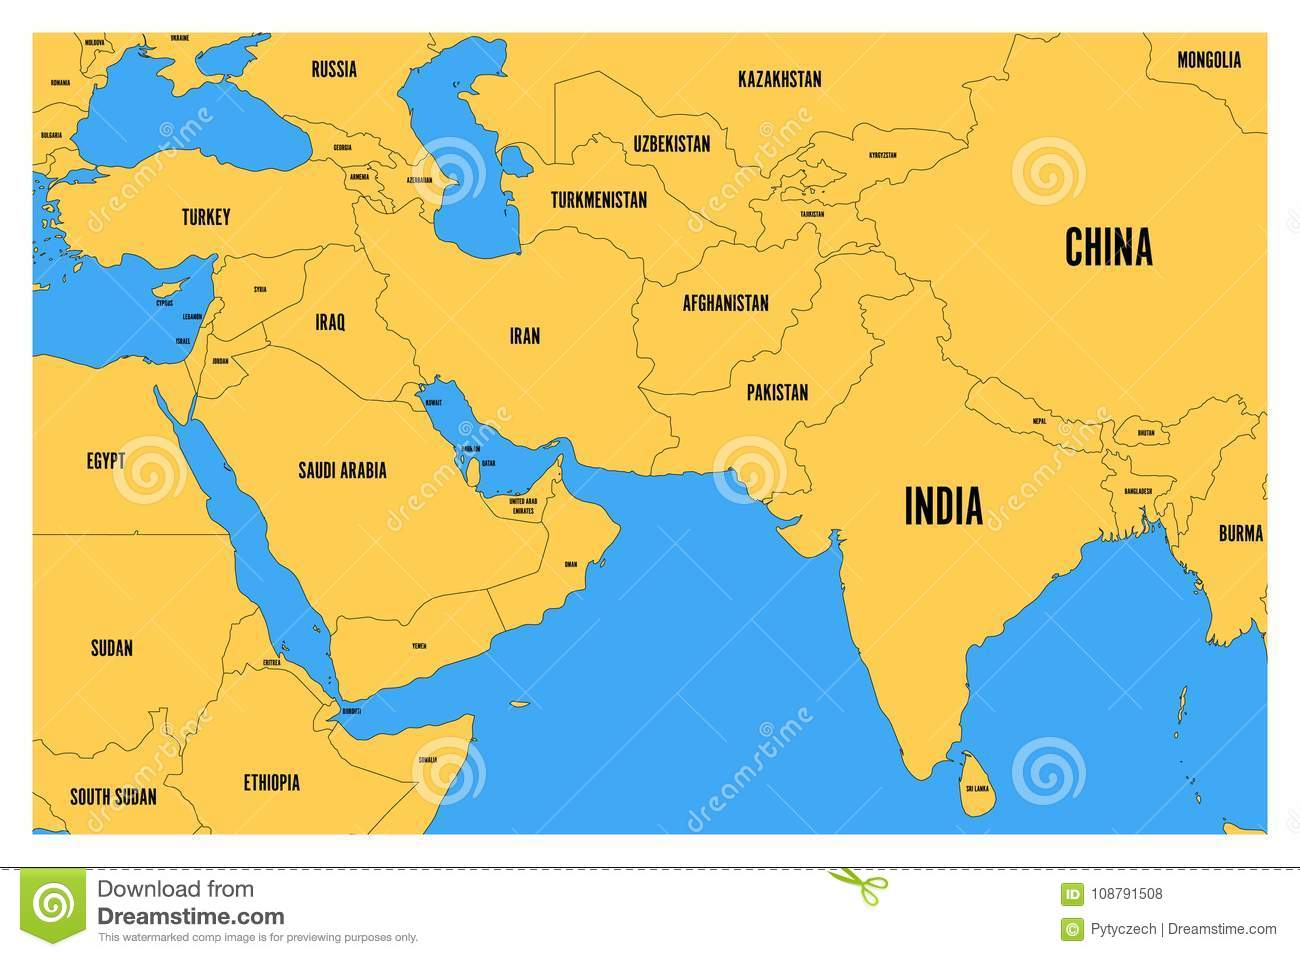 Political Map Of South Asia And Middle East. Simple Flat Vector Map on